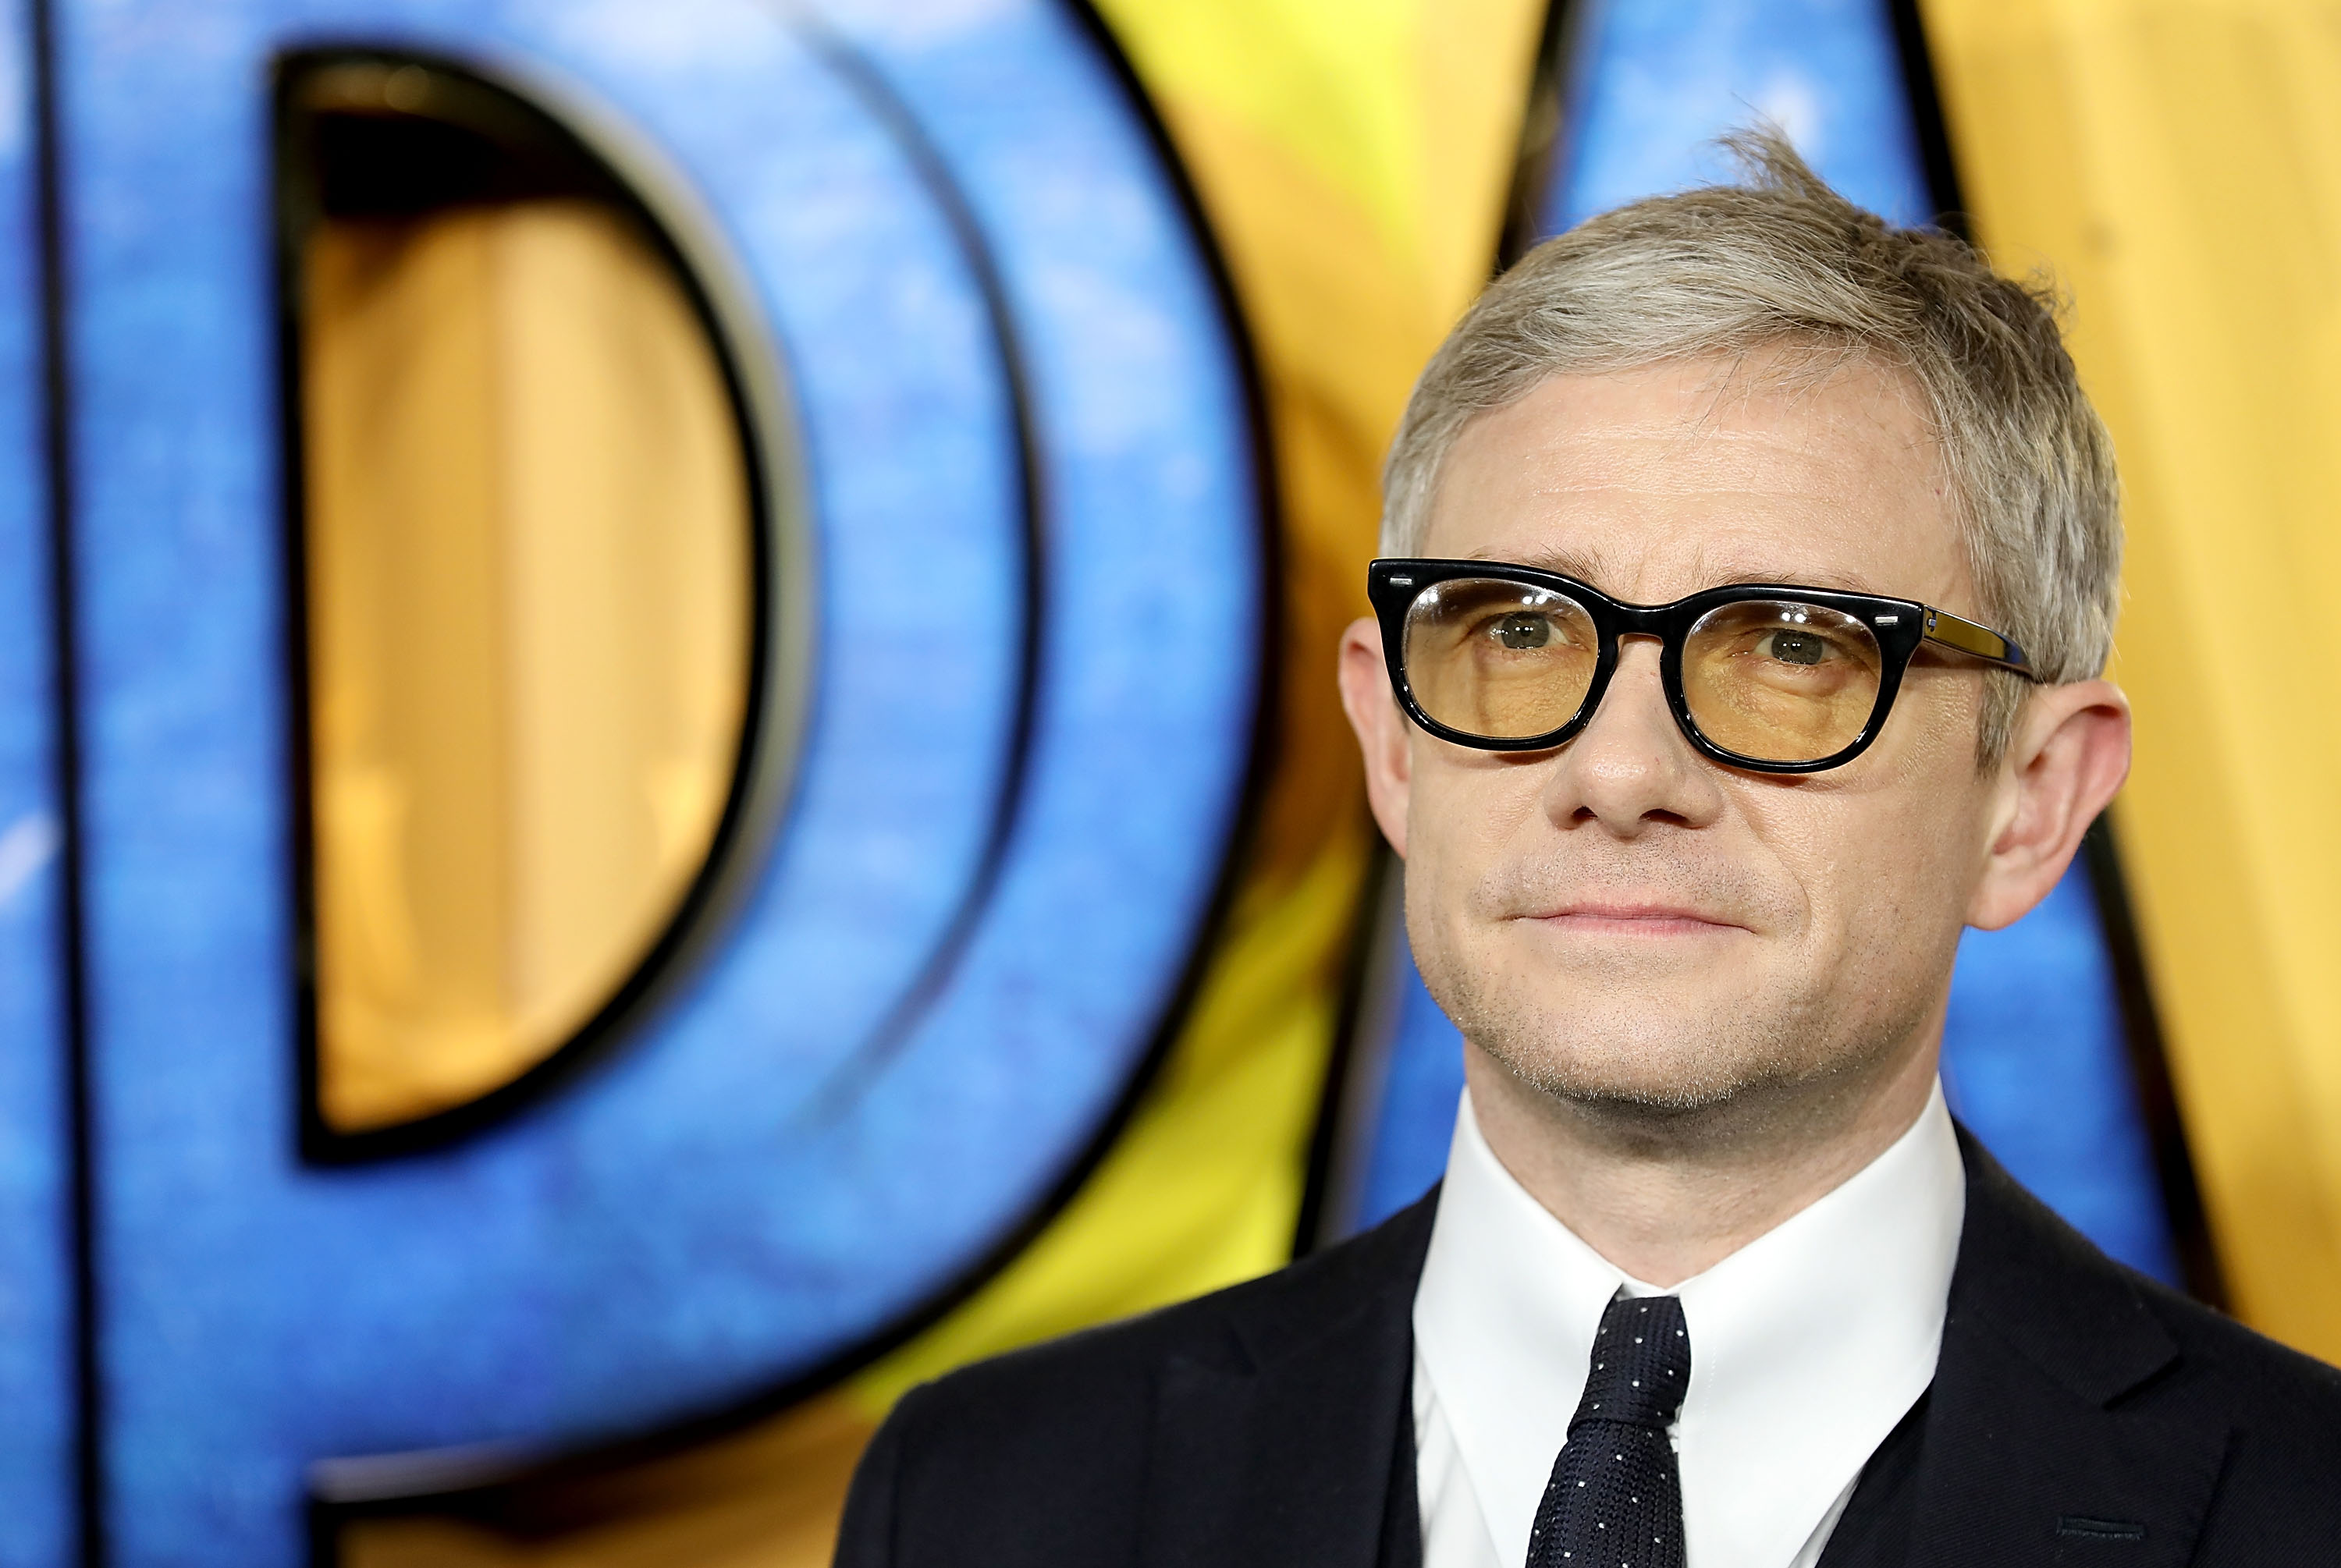 LONDON, ENGLAND - FEBRUARY 08:  Martin Freeman attends the European Premiere of 'Black Panther' at Eventim Apollo on February 8, 2018 in London, England.  (Photo by Tim P. Whitby/Tim P. Whitby/Getty Images)  Getty, TL